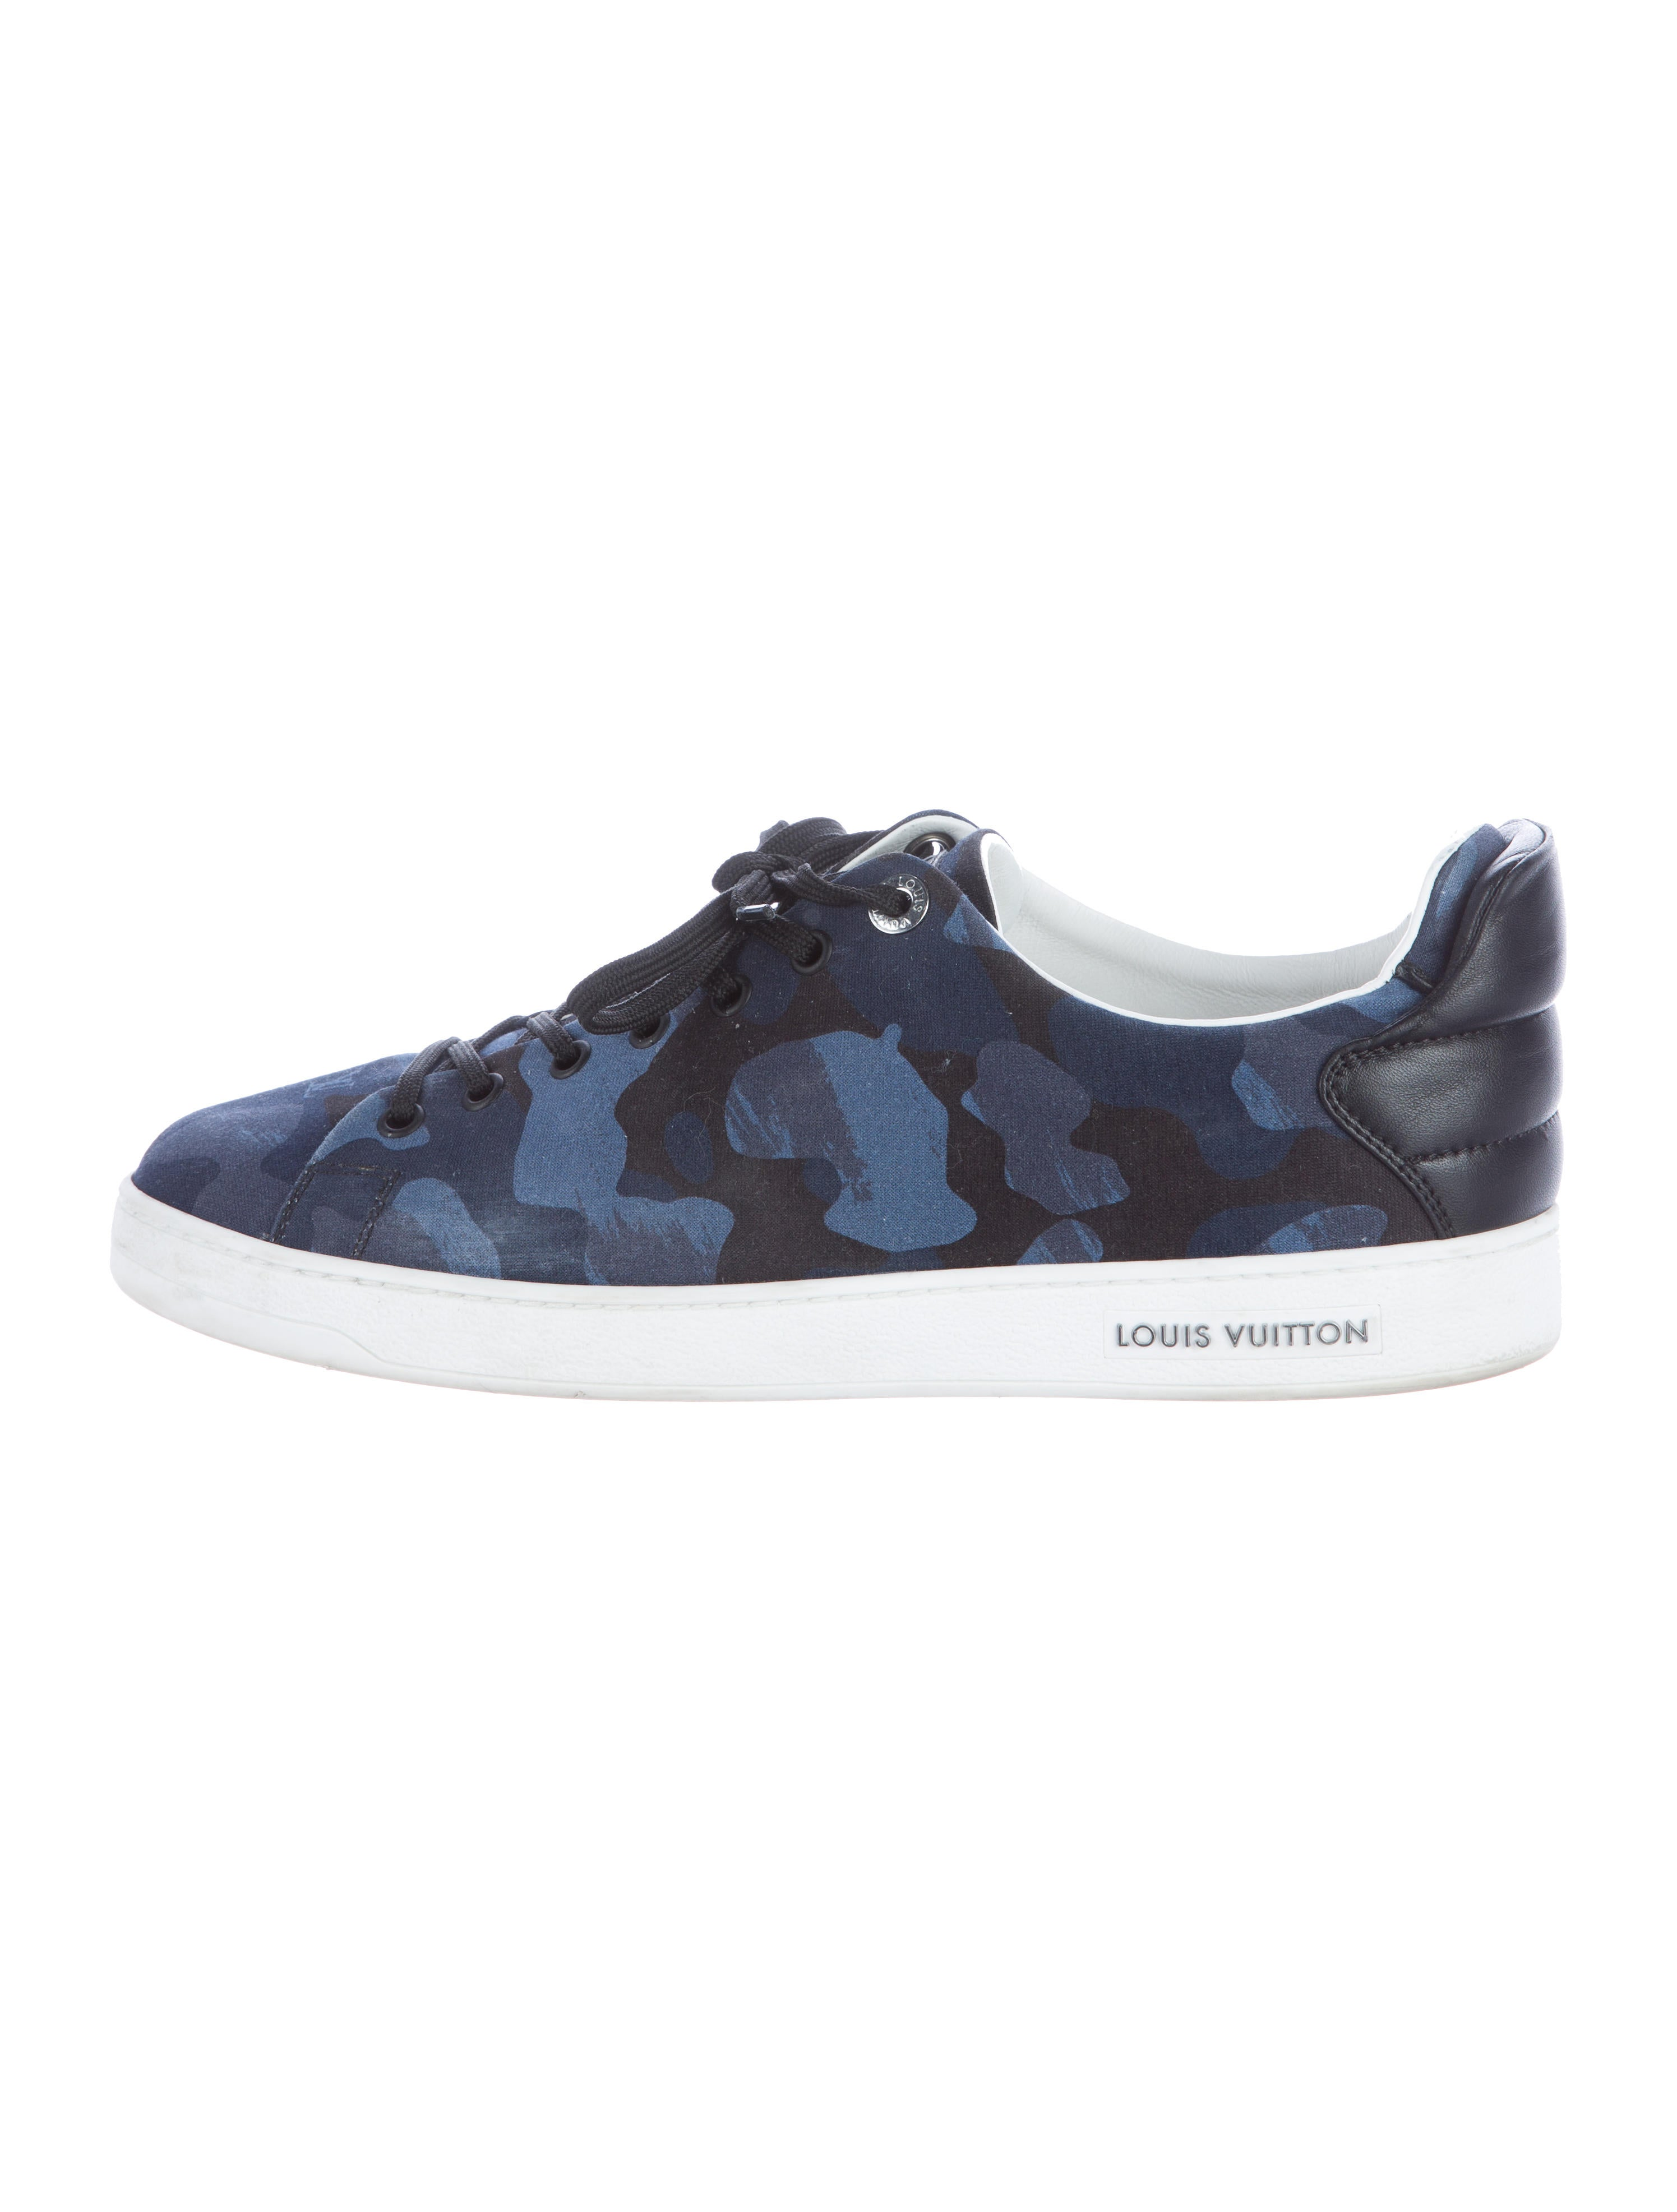 7434aa7bbcd Louis Vuitton 2016 Frontrow Camouflage Sneakers - Shoes - LOU92818